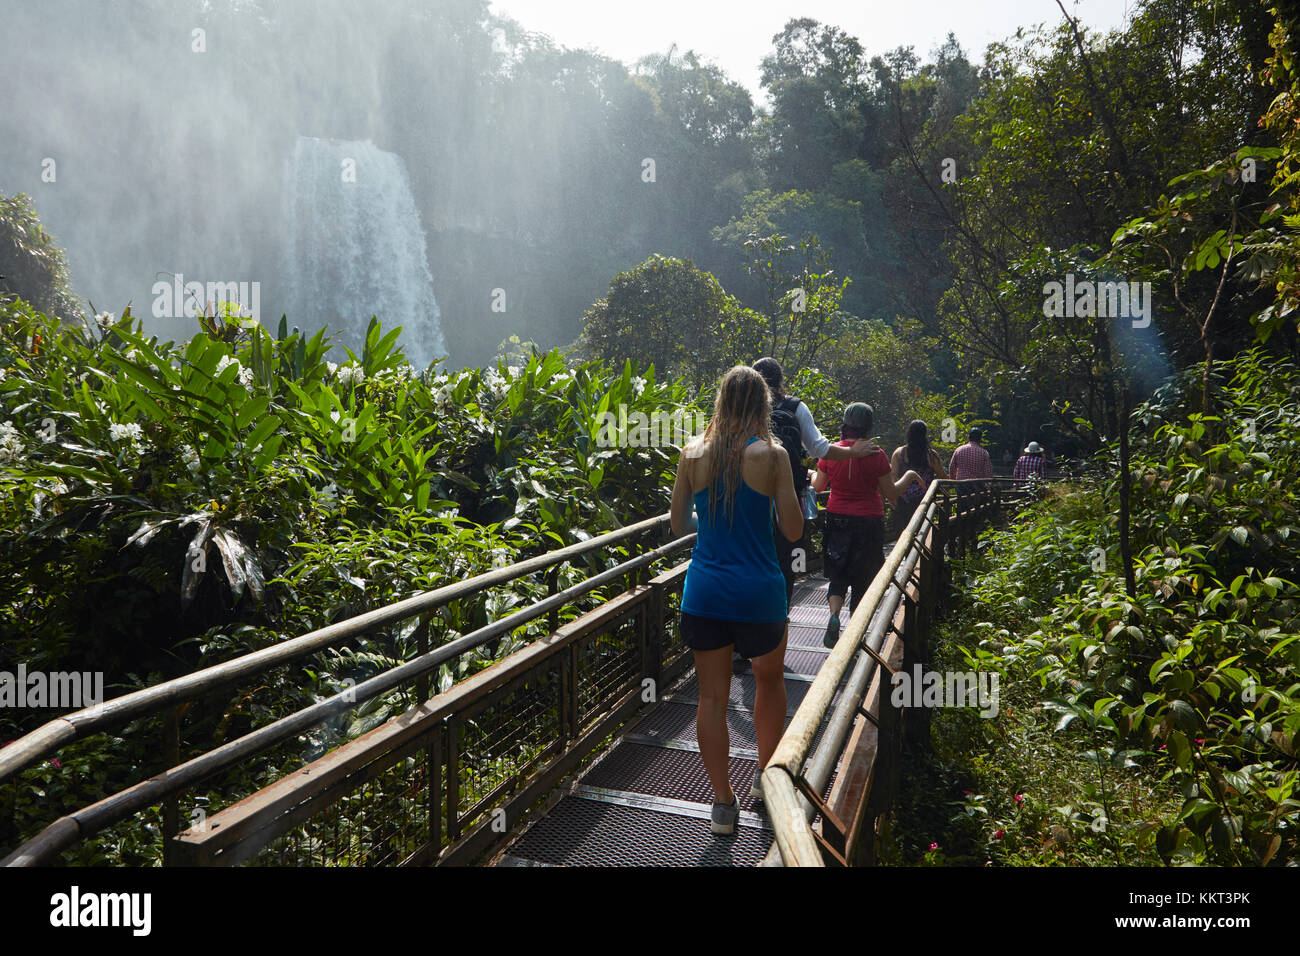 Tourist on walkway by Iguazu Falls, Argentina, South America - Stock Image